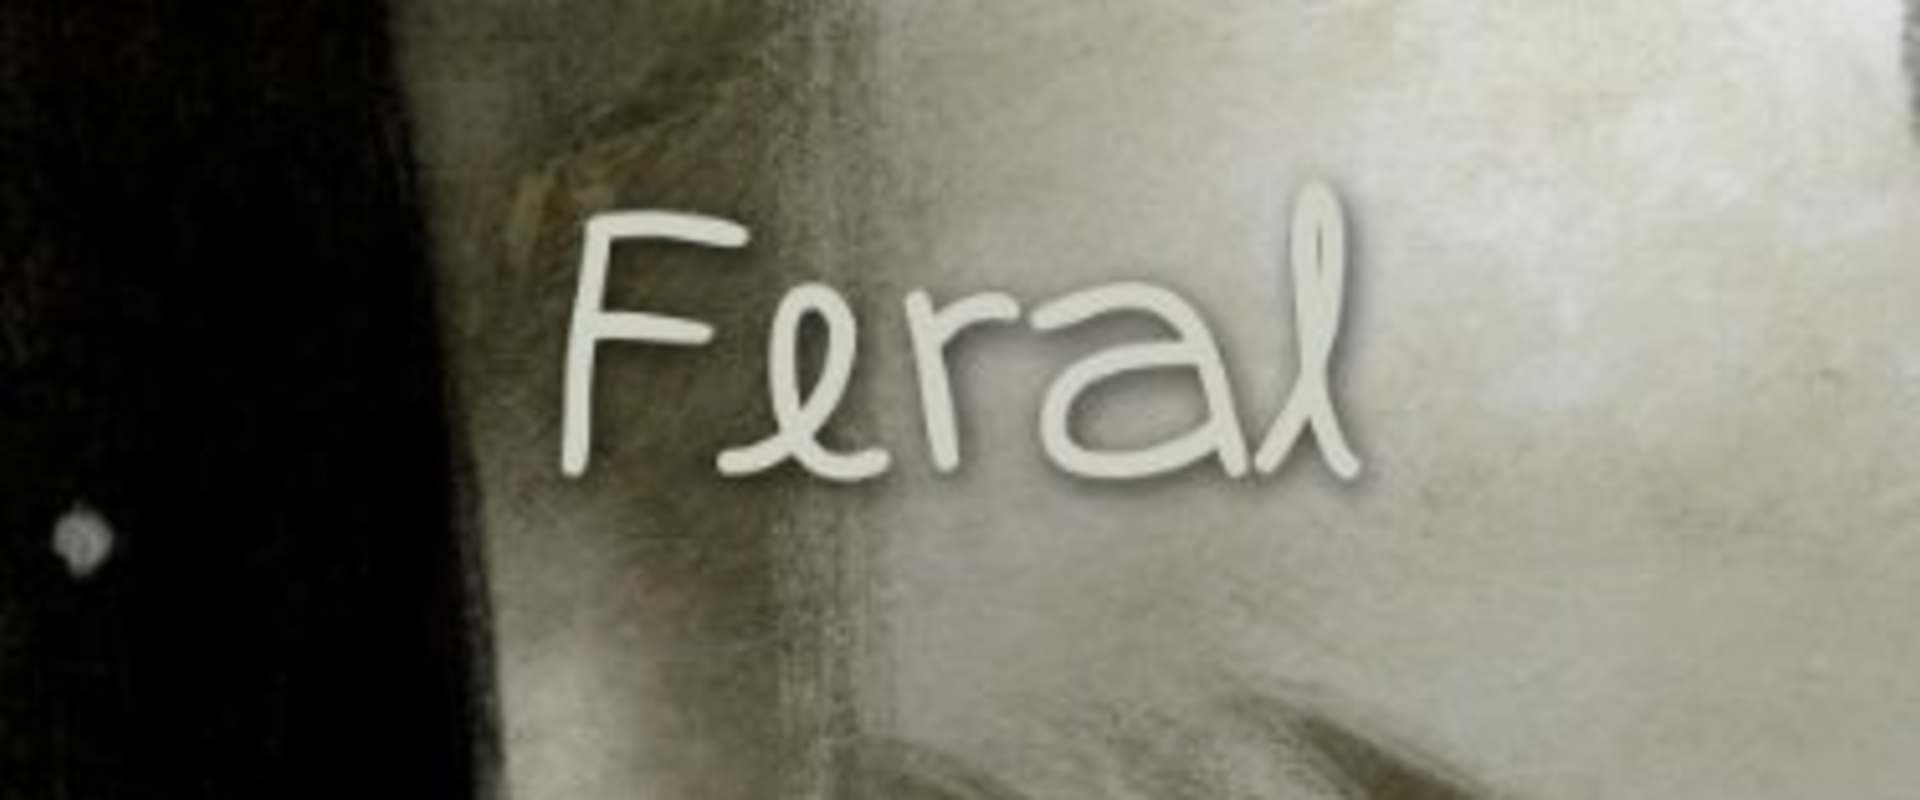 Feral background 1